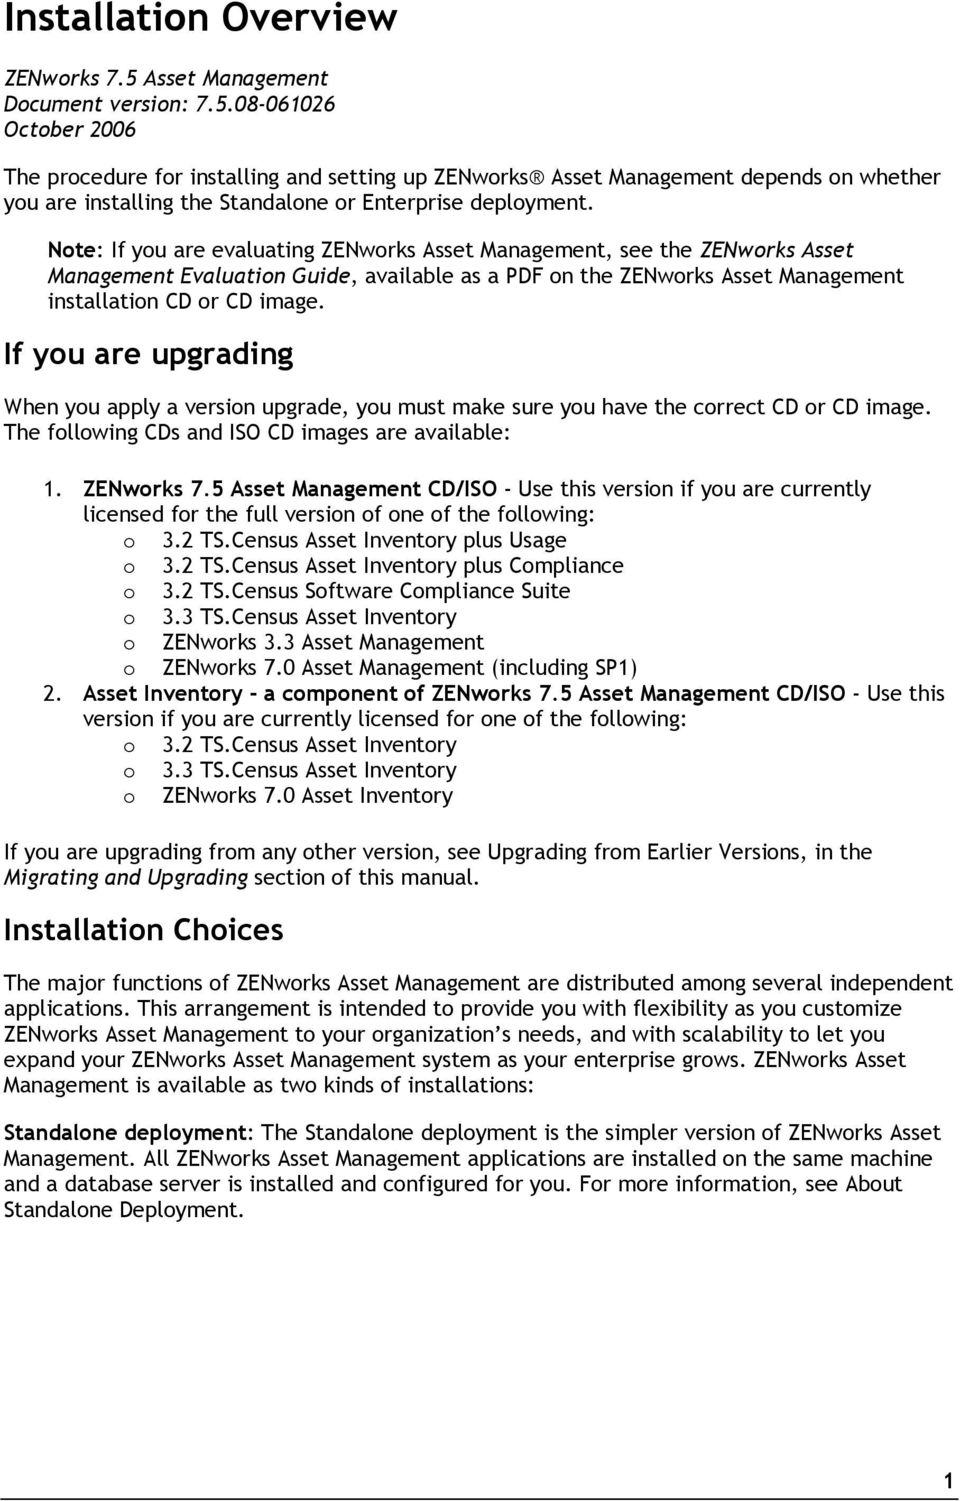 08-061026 October 2006 The procedure for installing and setting up ZENworks Asset Management depends on whether you are installing the Standalone or Enterprise deployment.